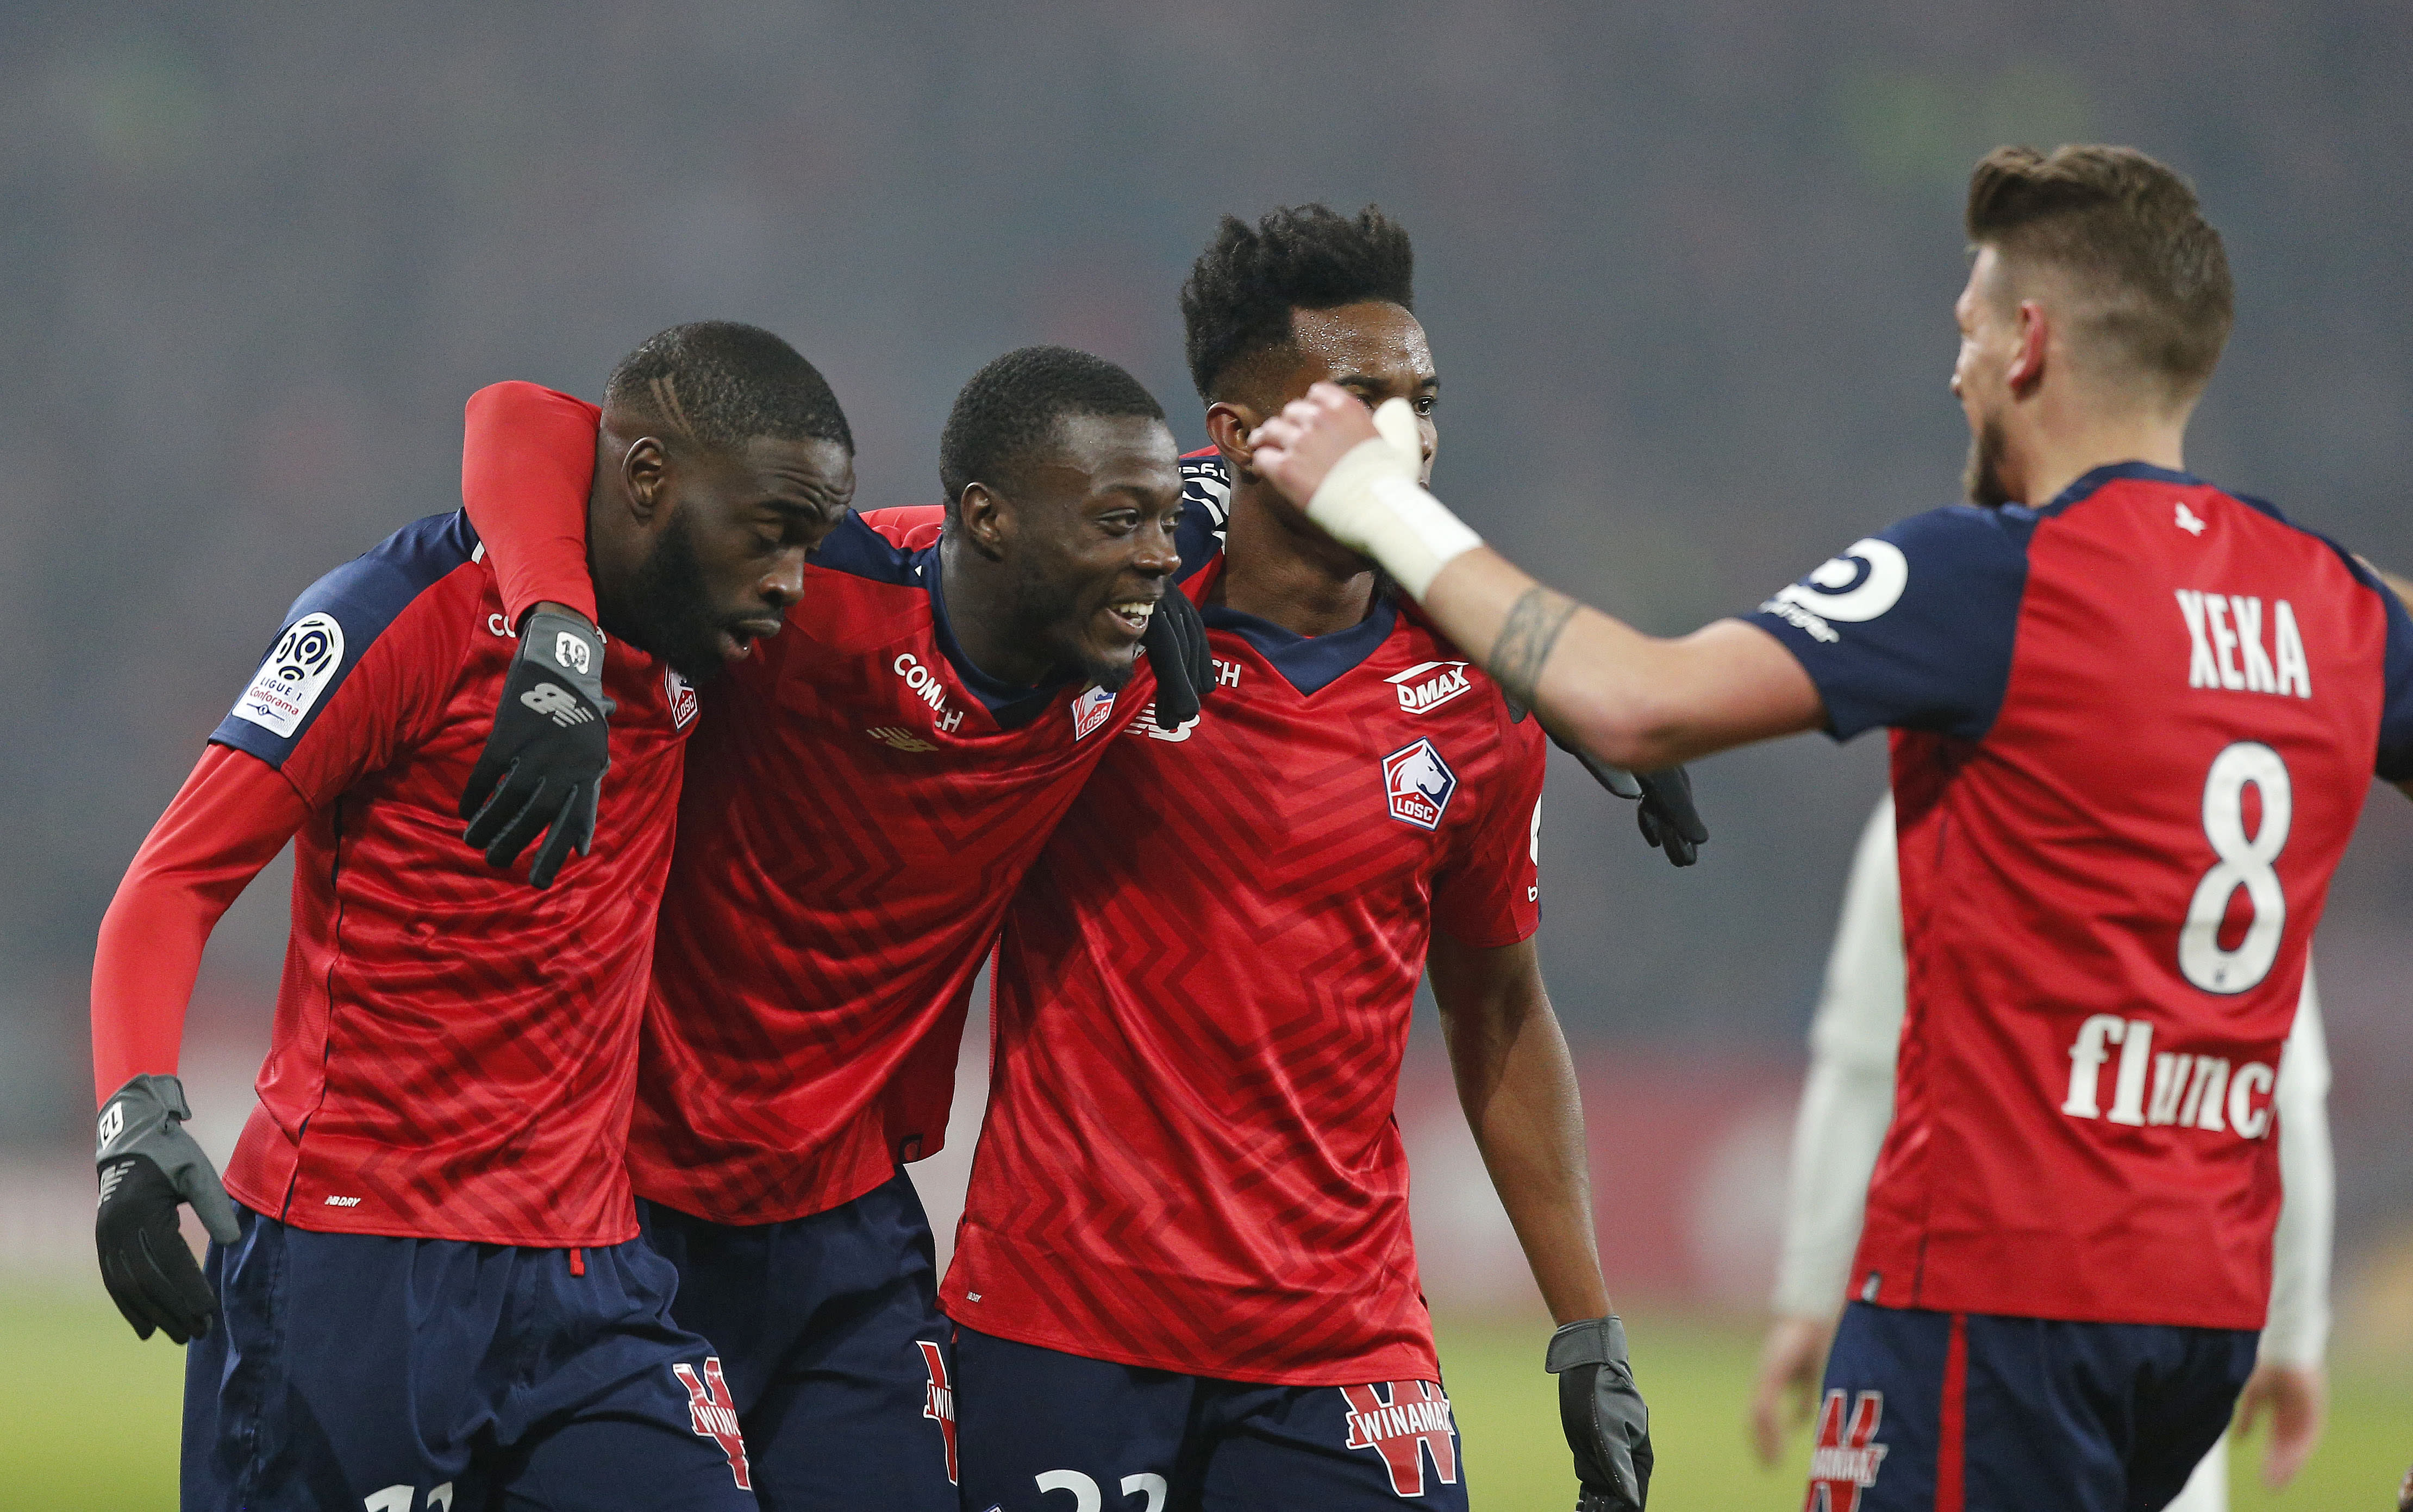 Psg Again Fails To Seal French Title After Crushing 5 1 Loss